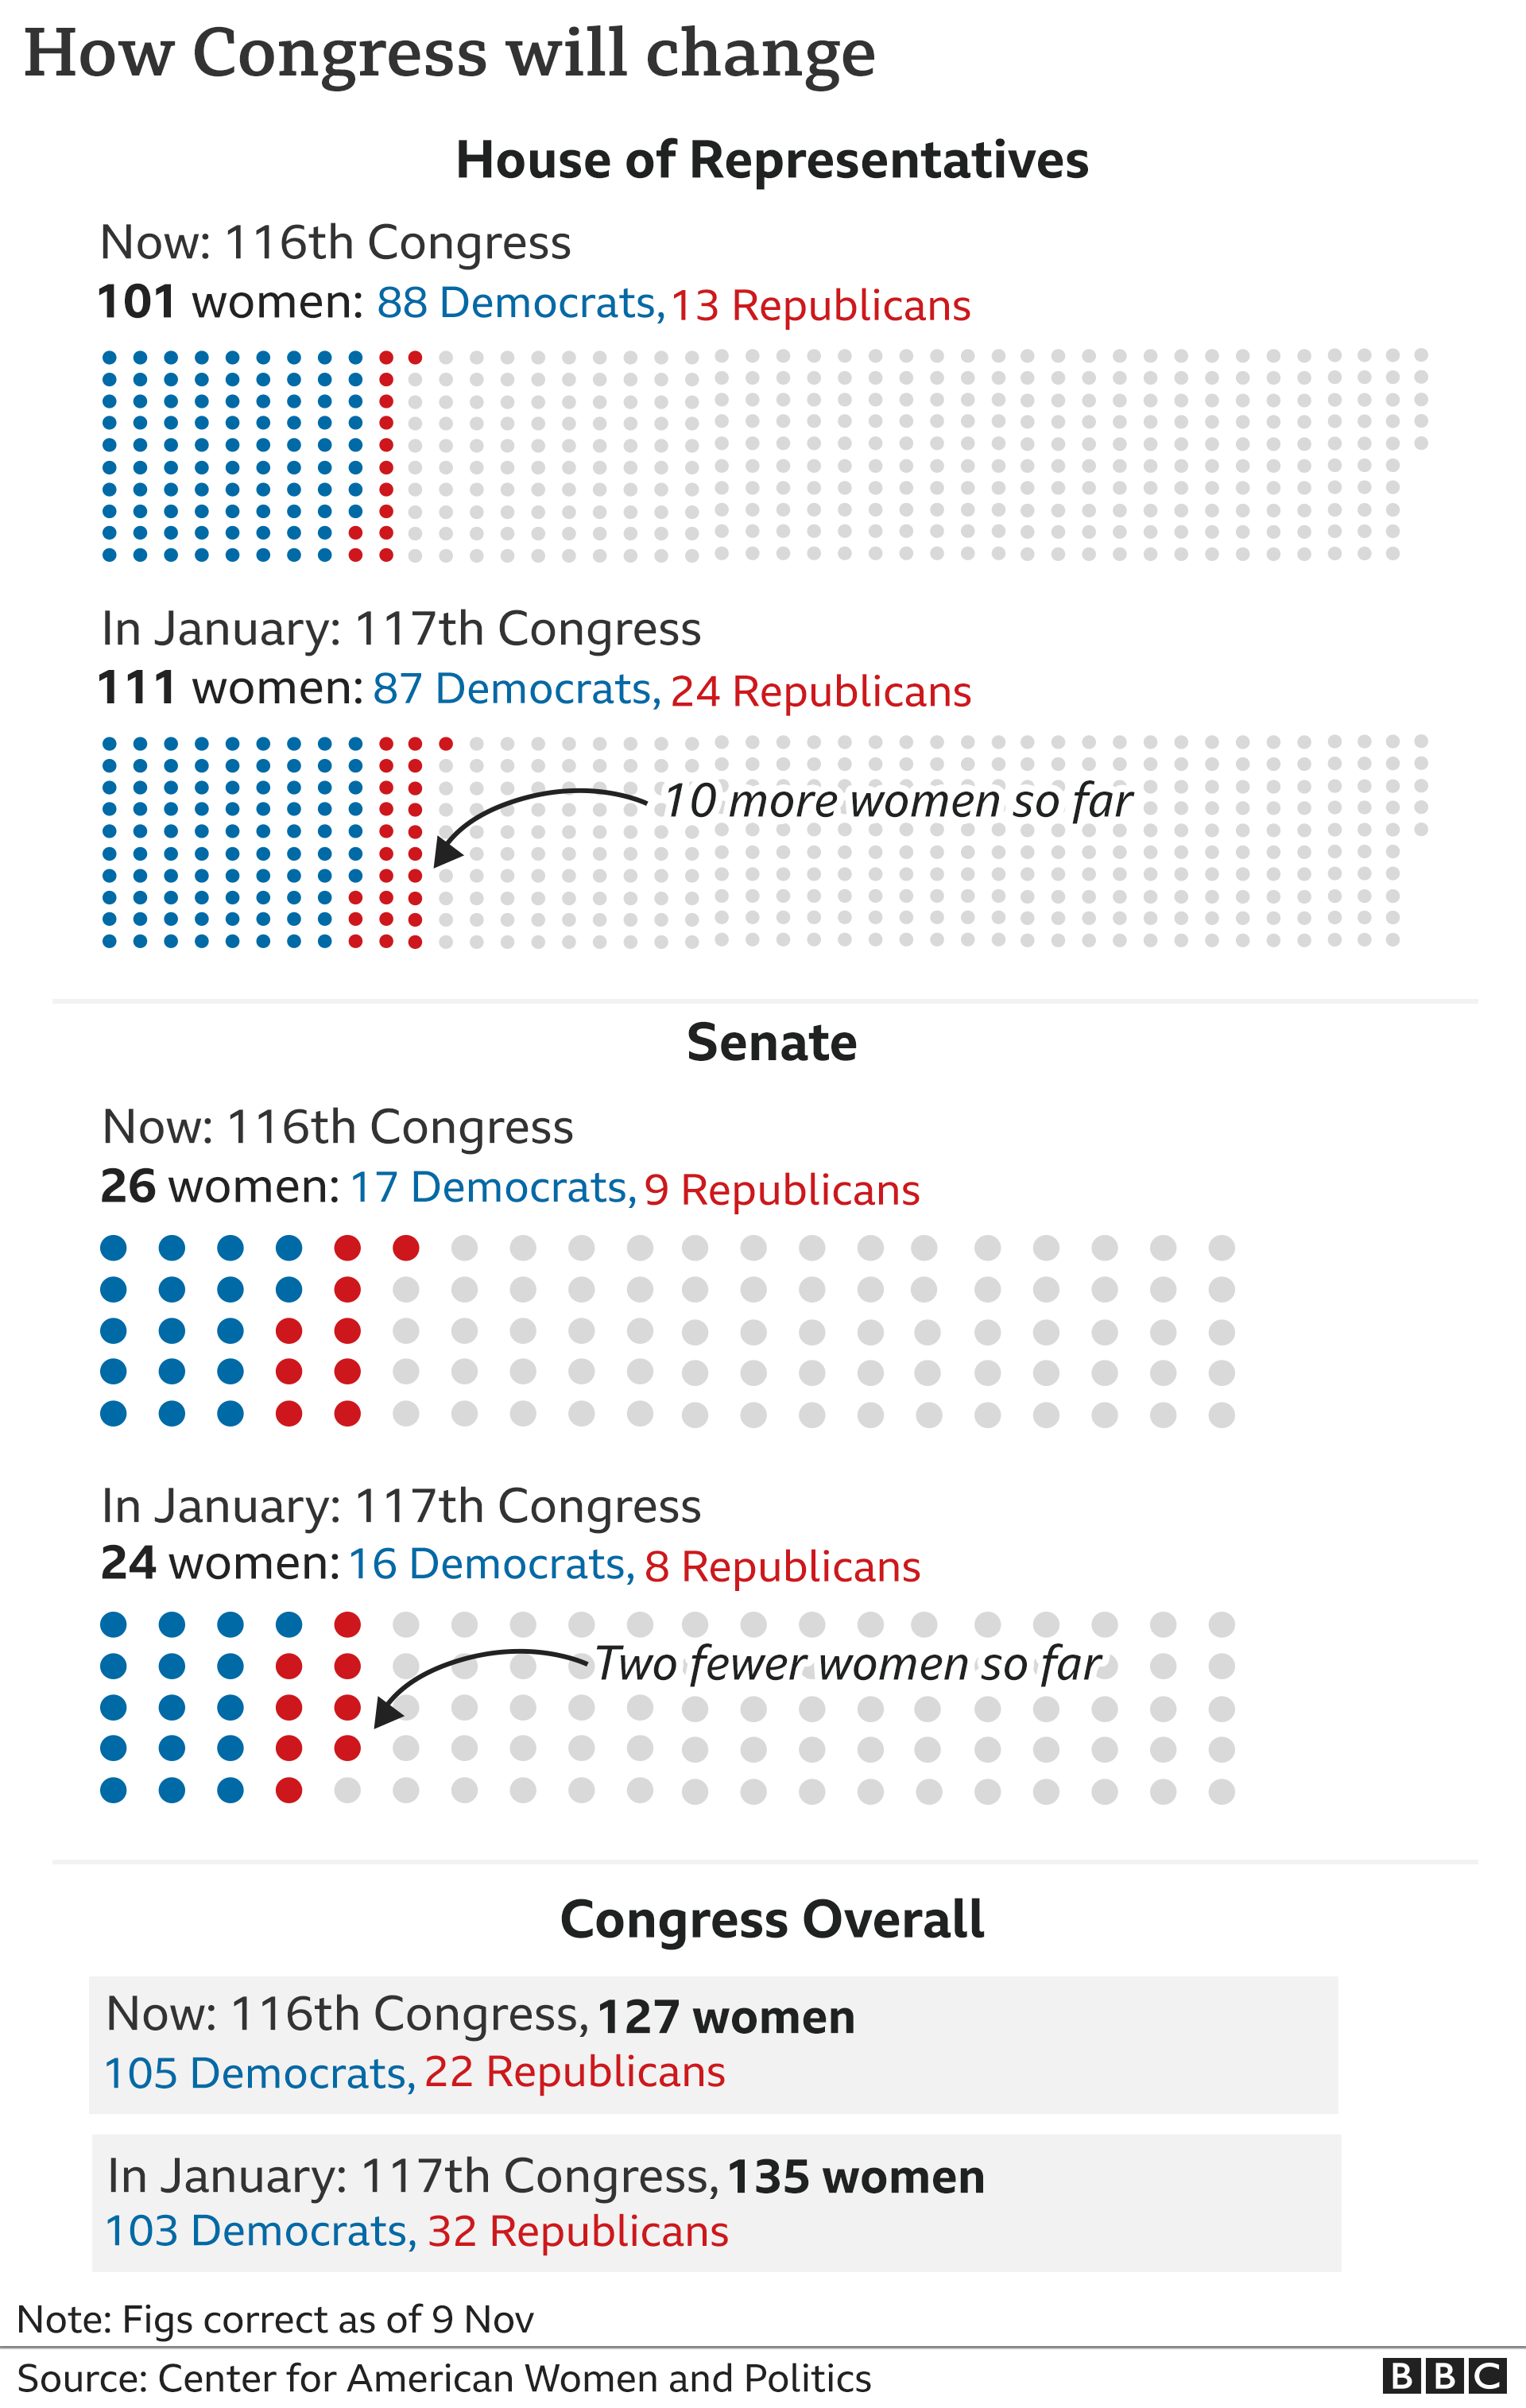 Graphic showing the change in women in Congress between now and 2021